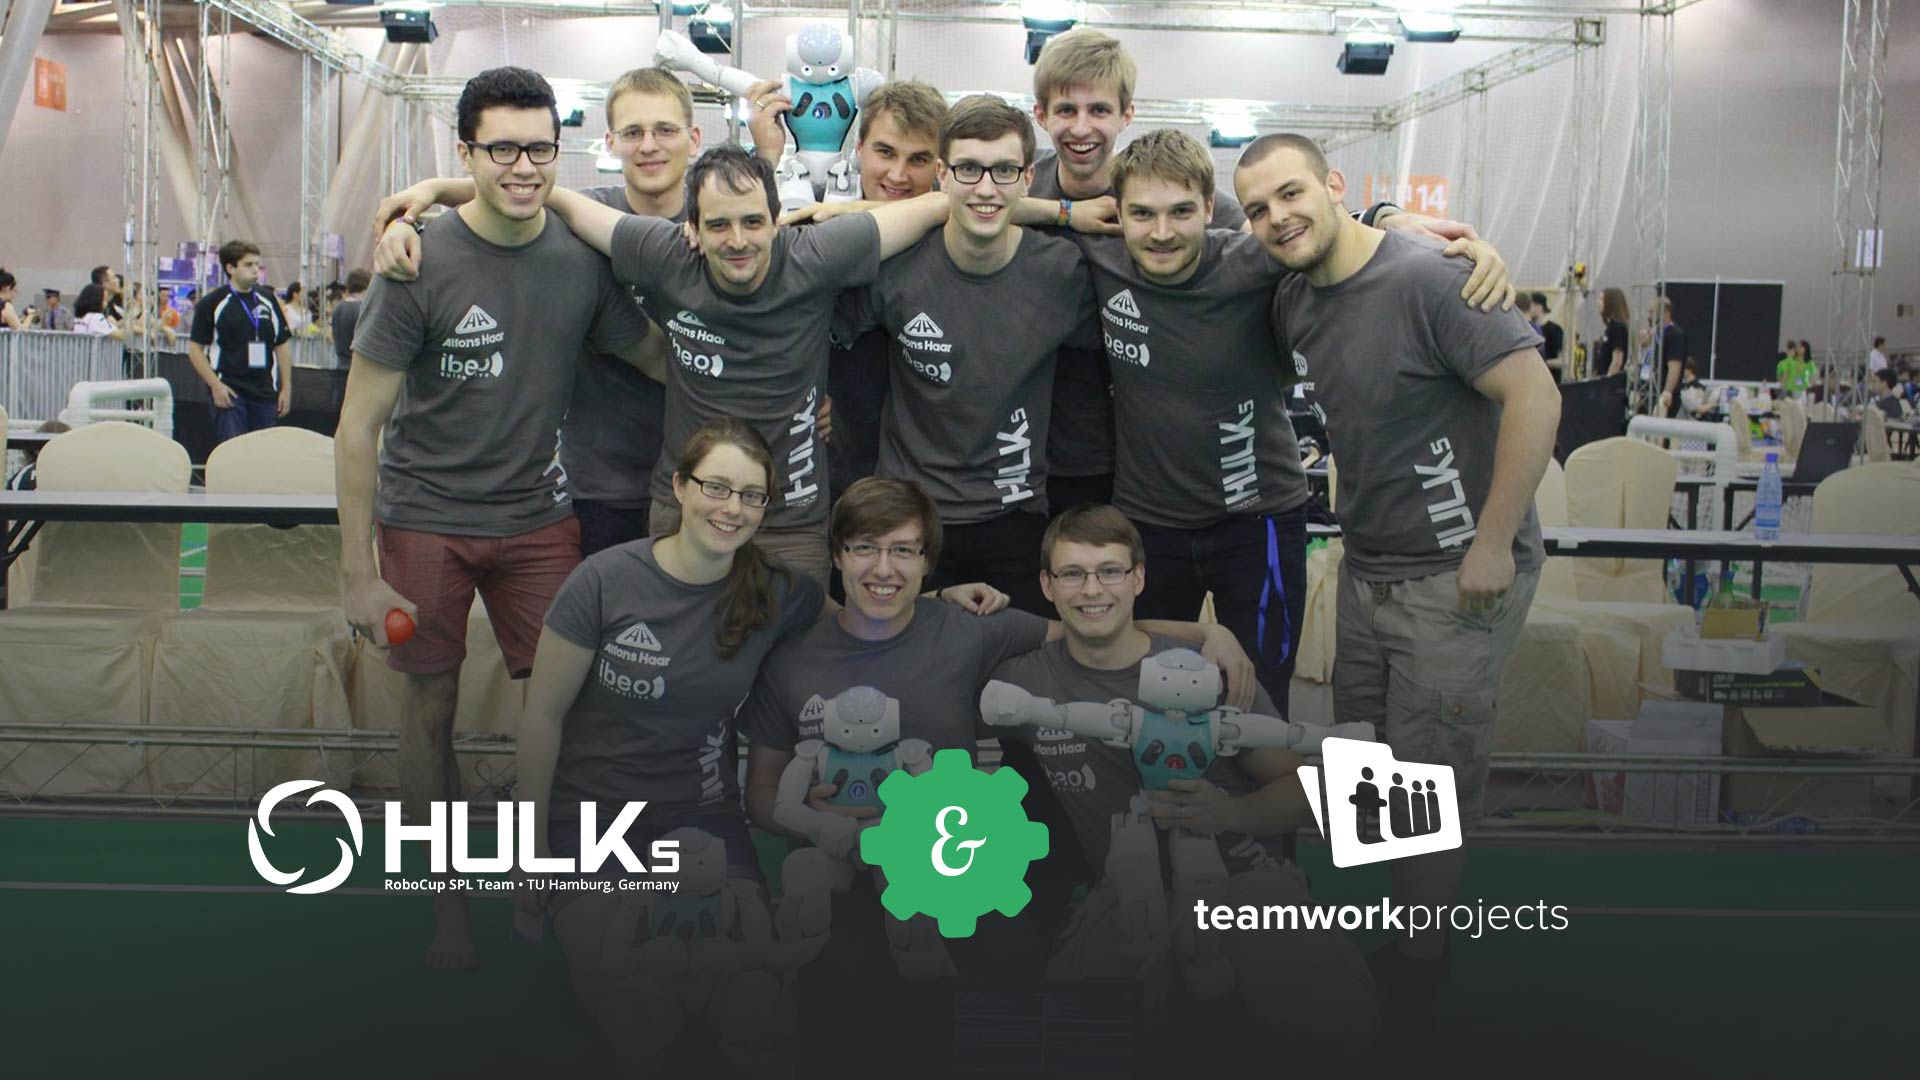 Team HULKs and Teamwork Projects | Teamwork.com